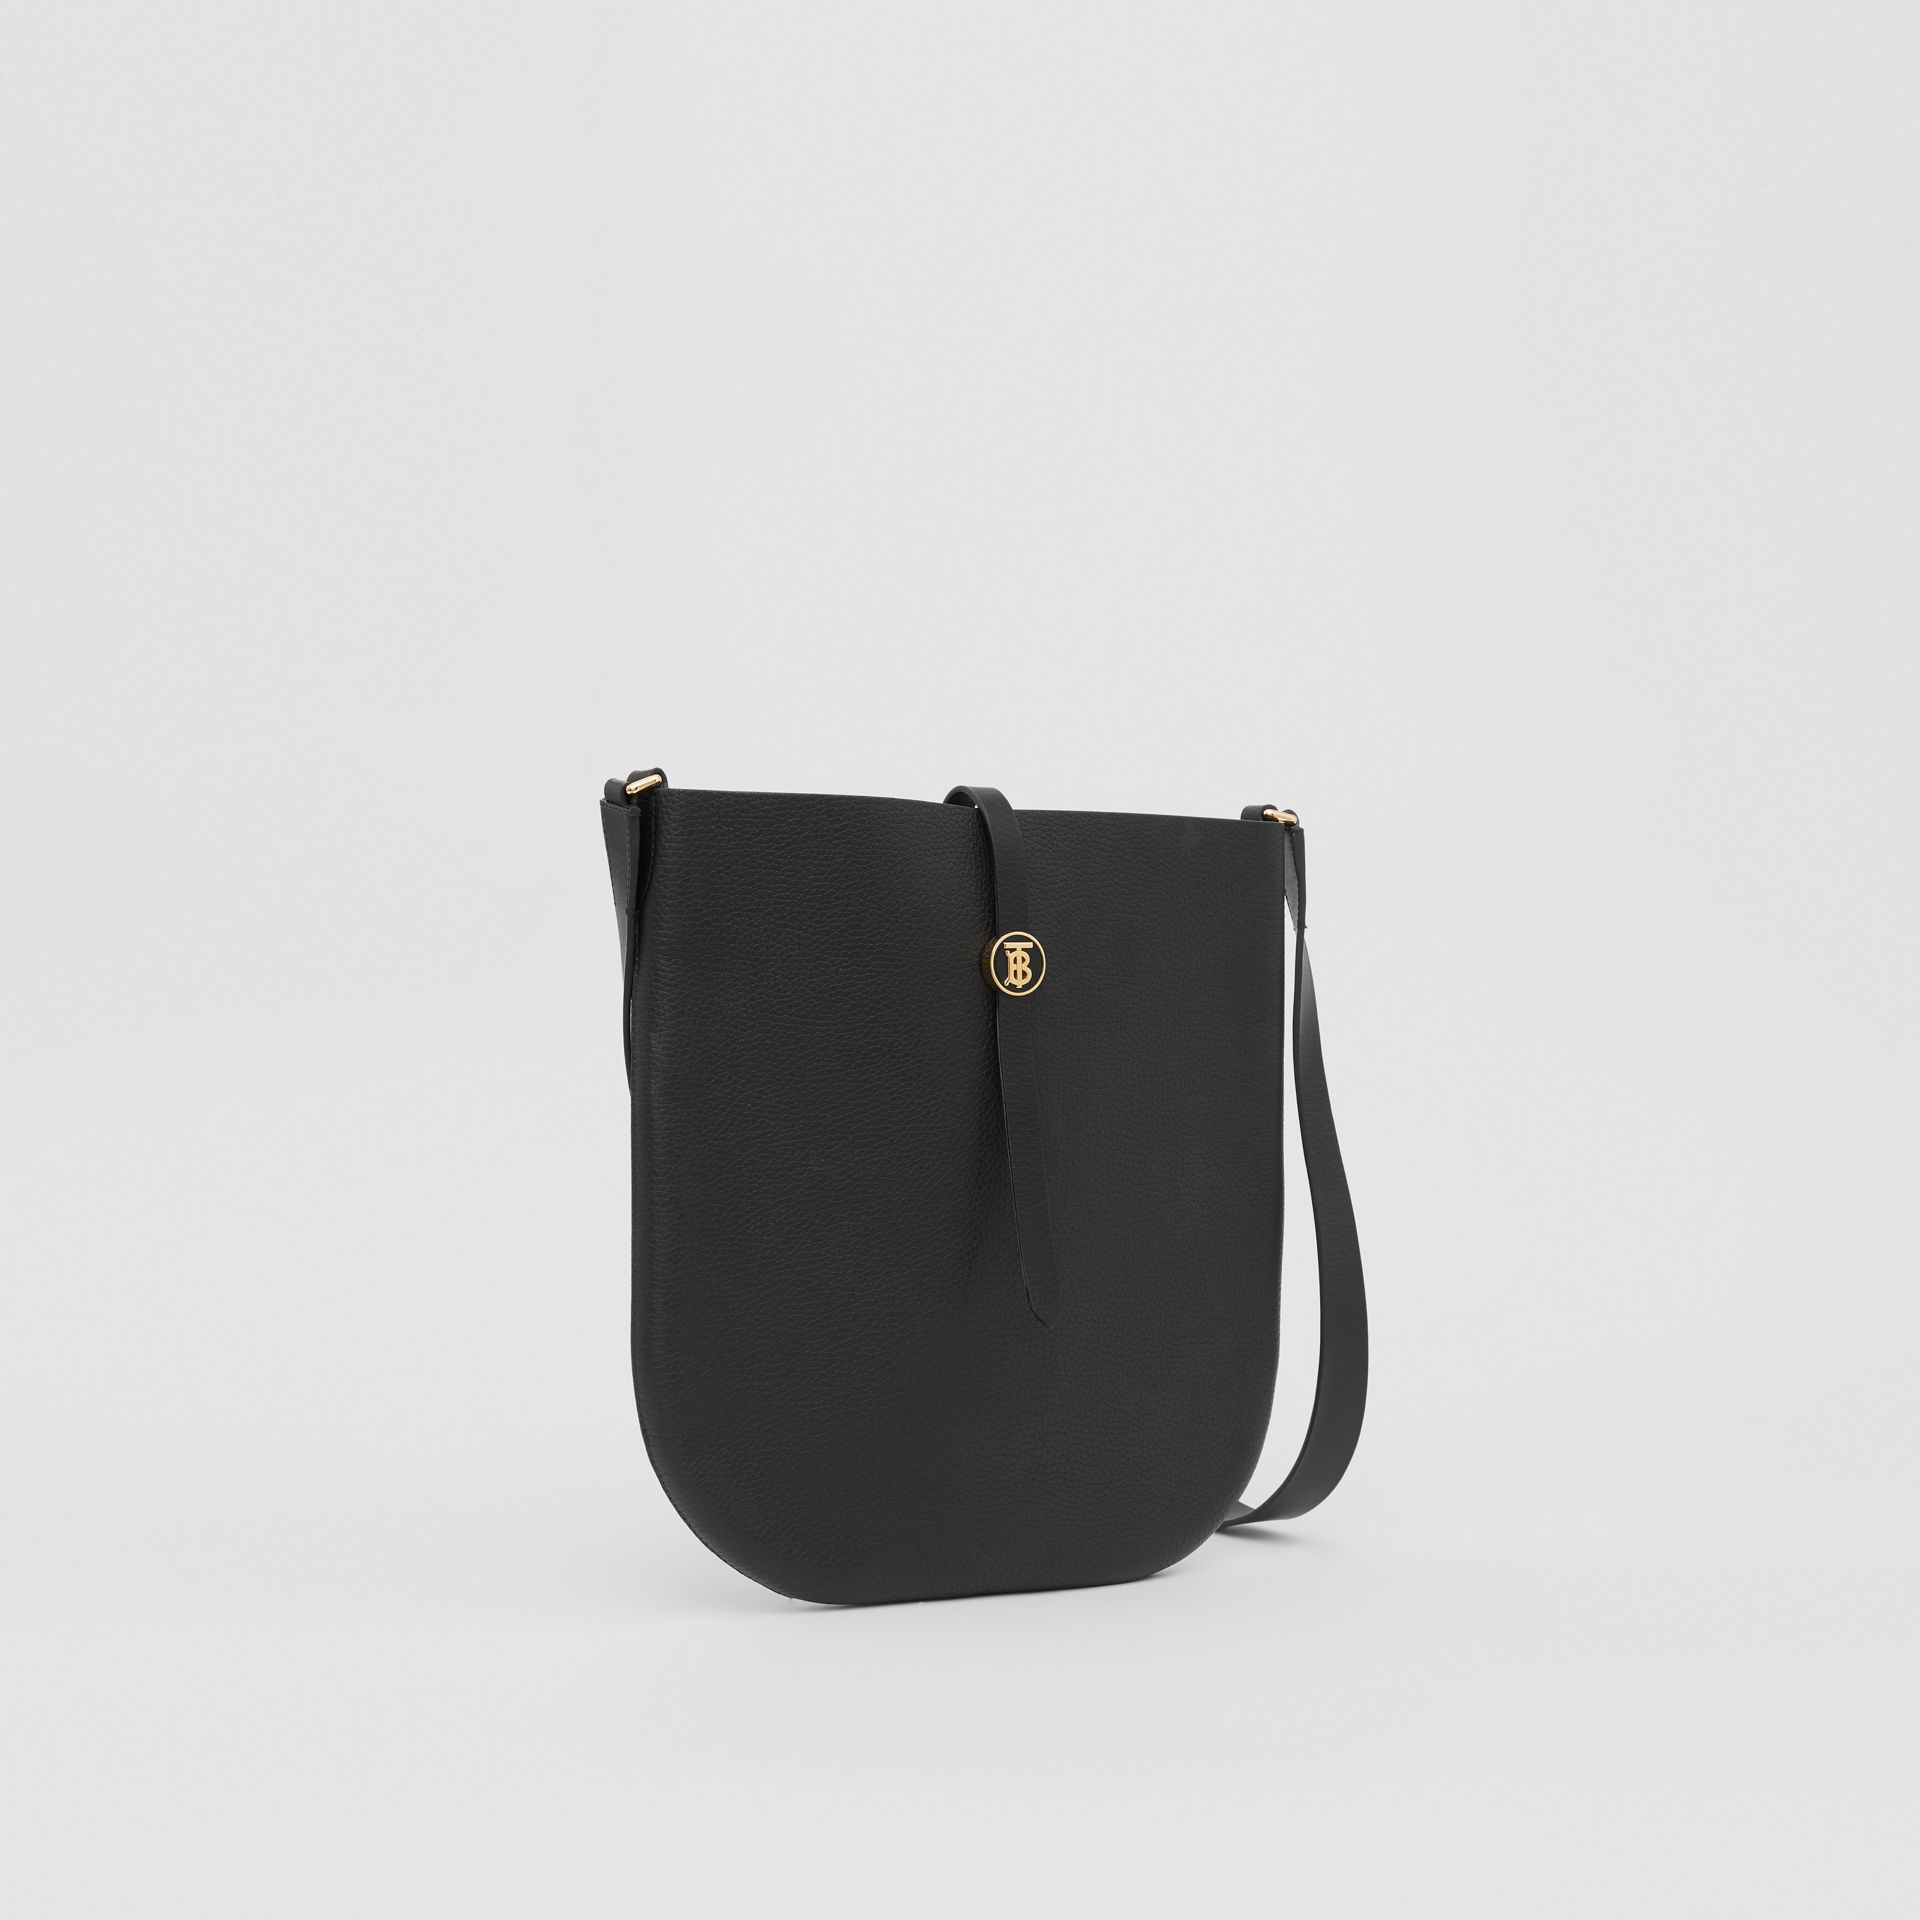 Grainy Leather Anne Bag in Black - Women   Burberry United Kingdom - gallery image 6